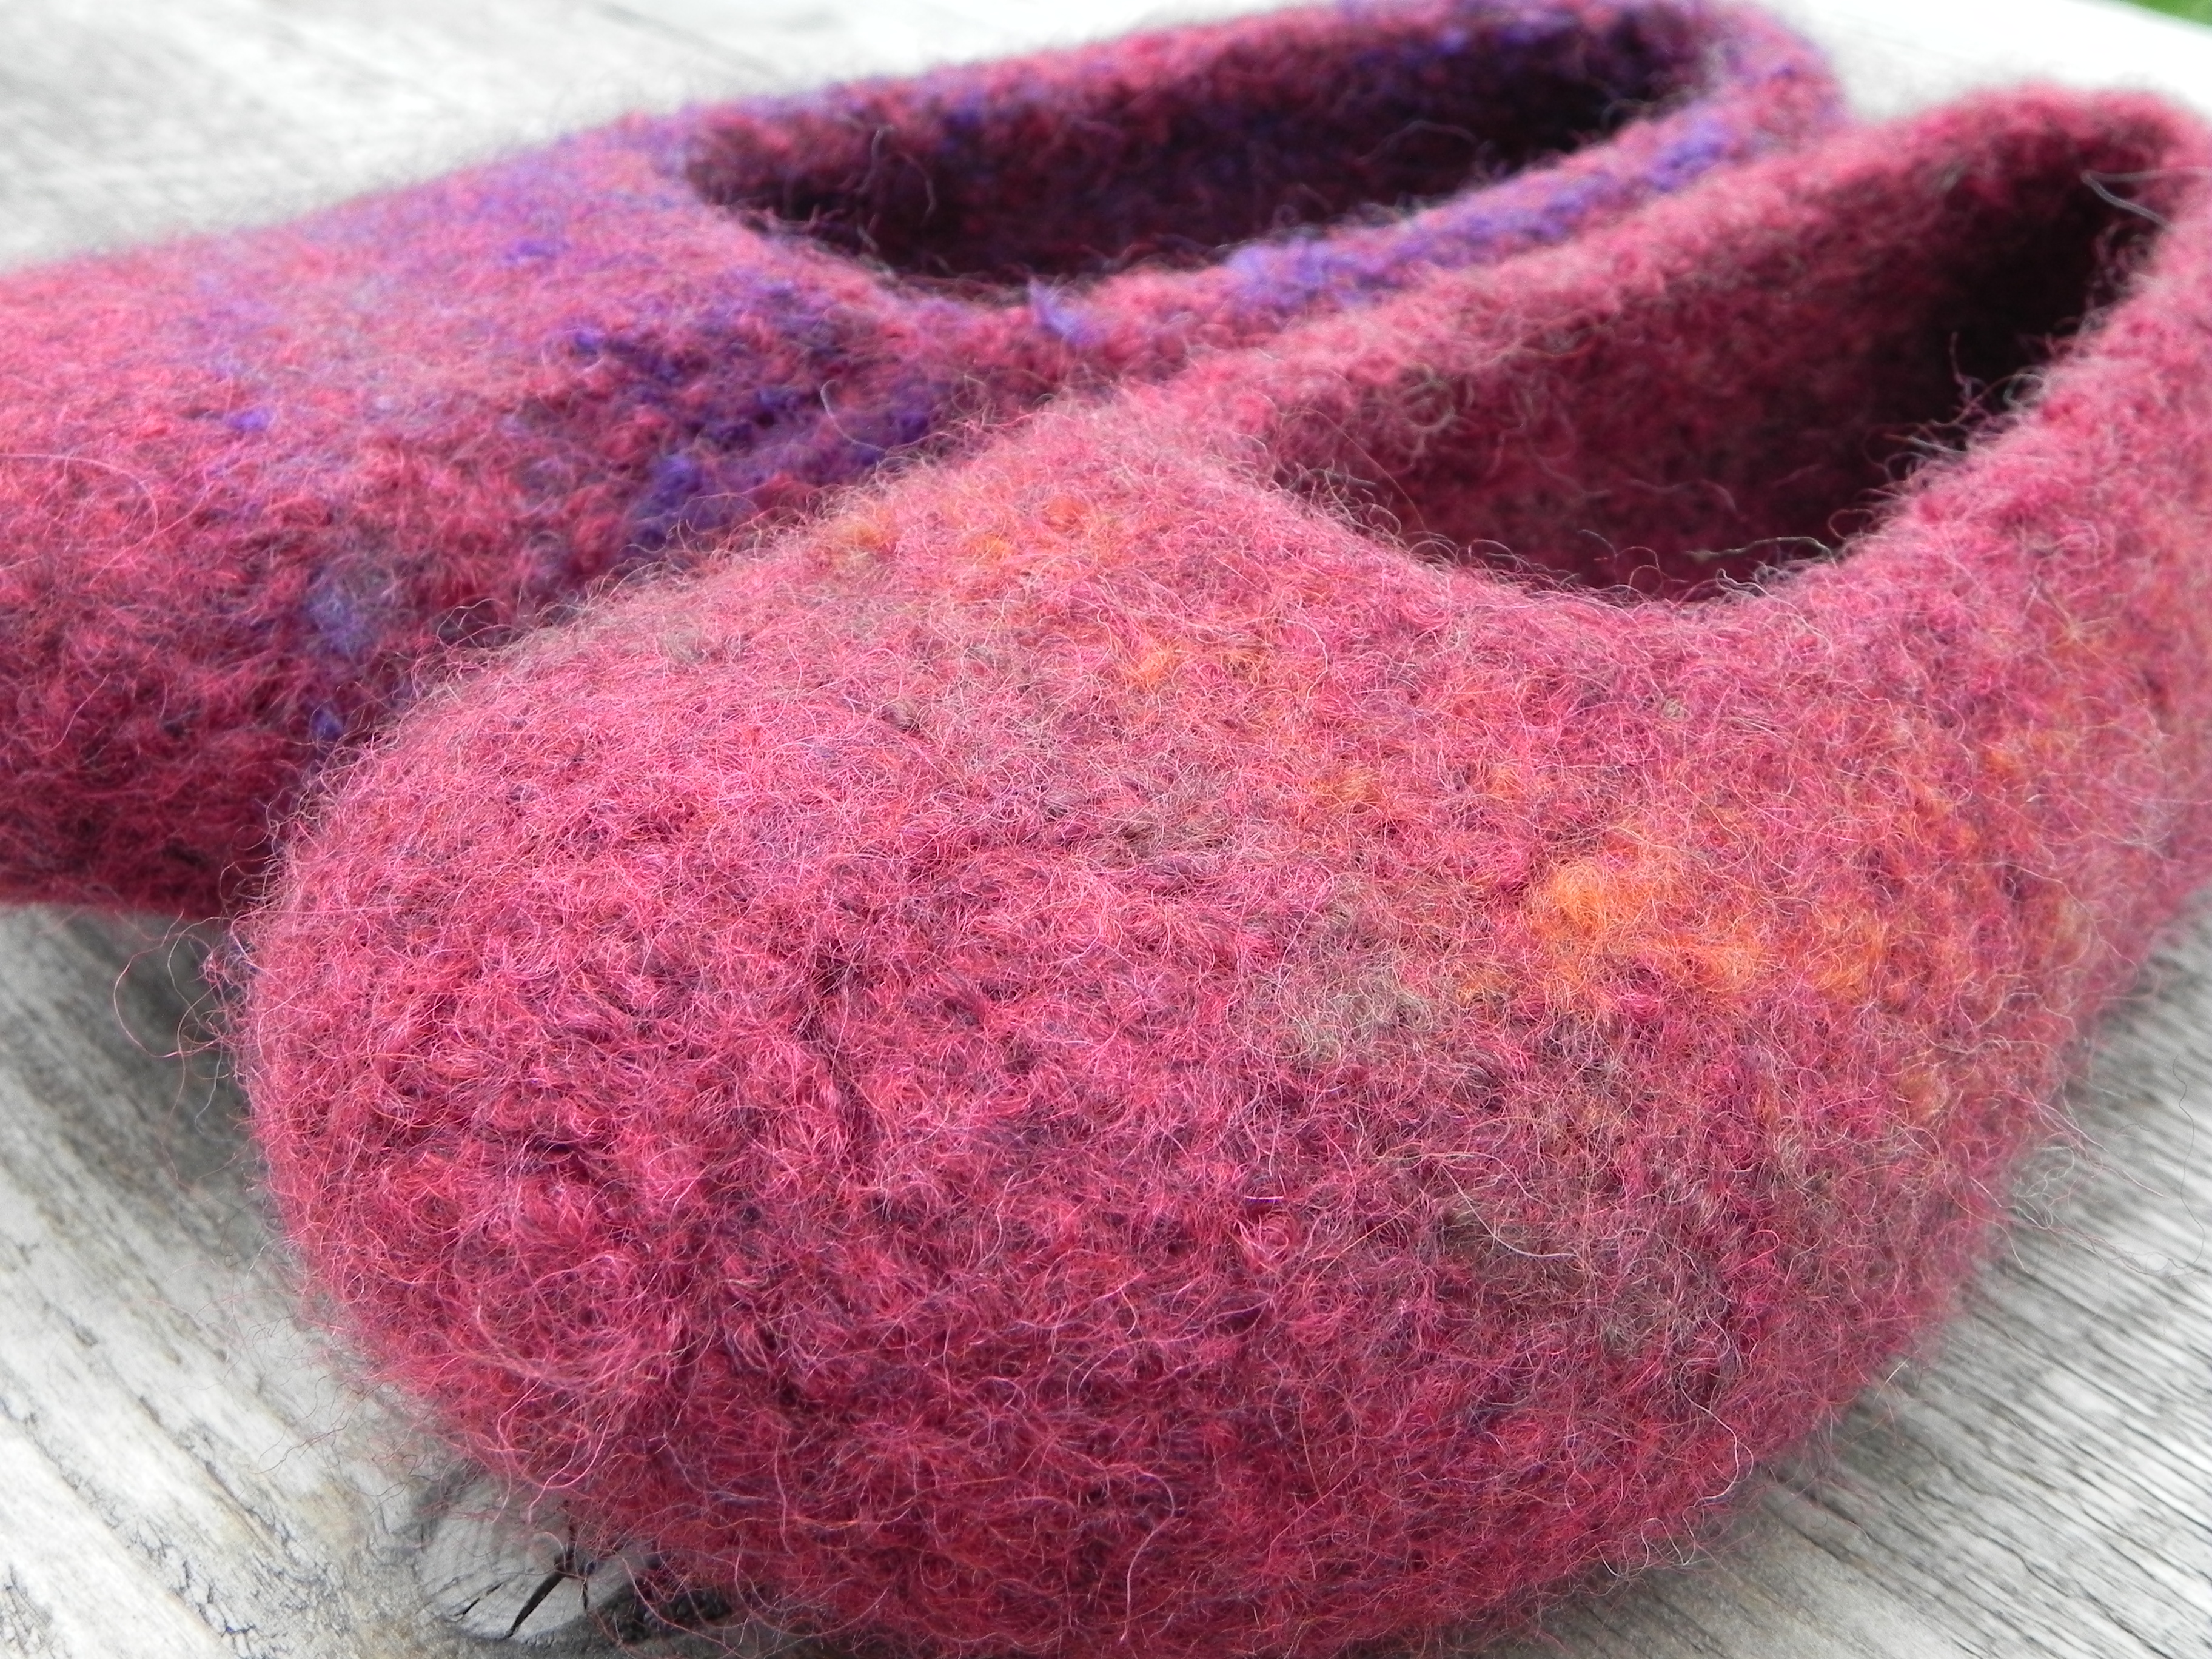 Knitting Easy Slippers : Easy to knit slippers knitting and crochet patterns